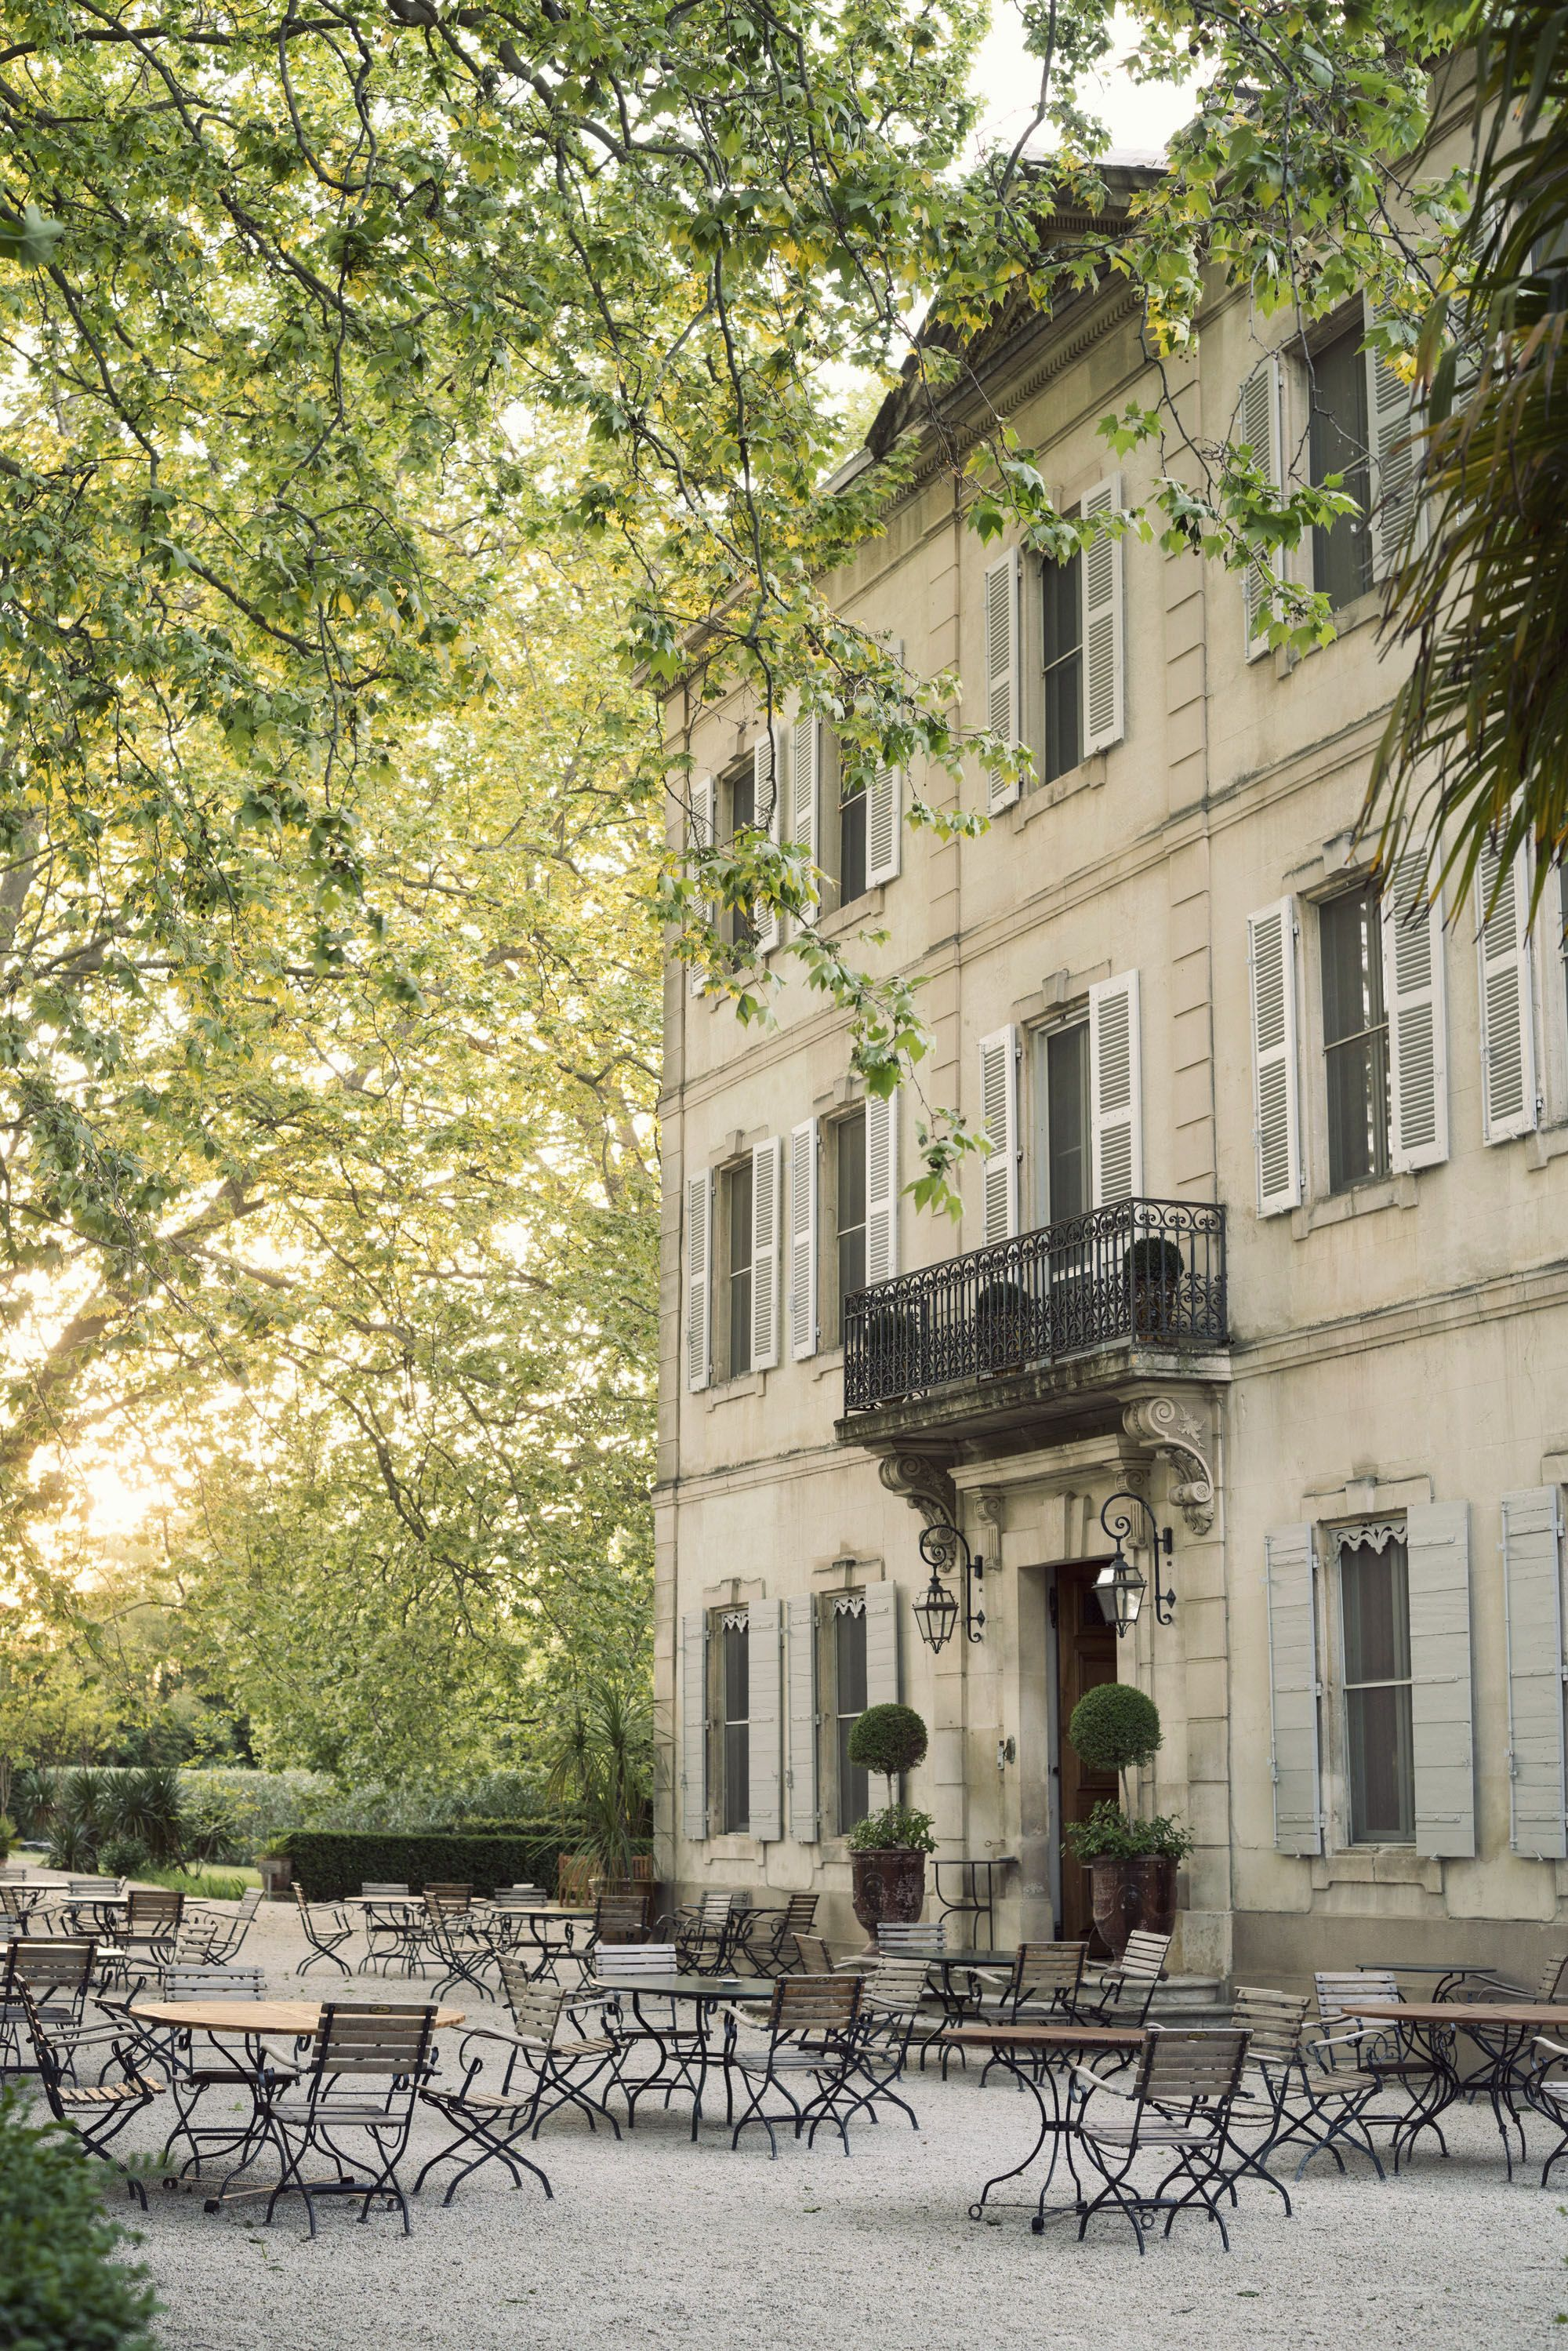 Chateau des Alpilles, a historic chateau in the heart on